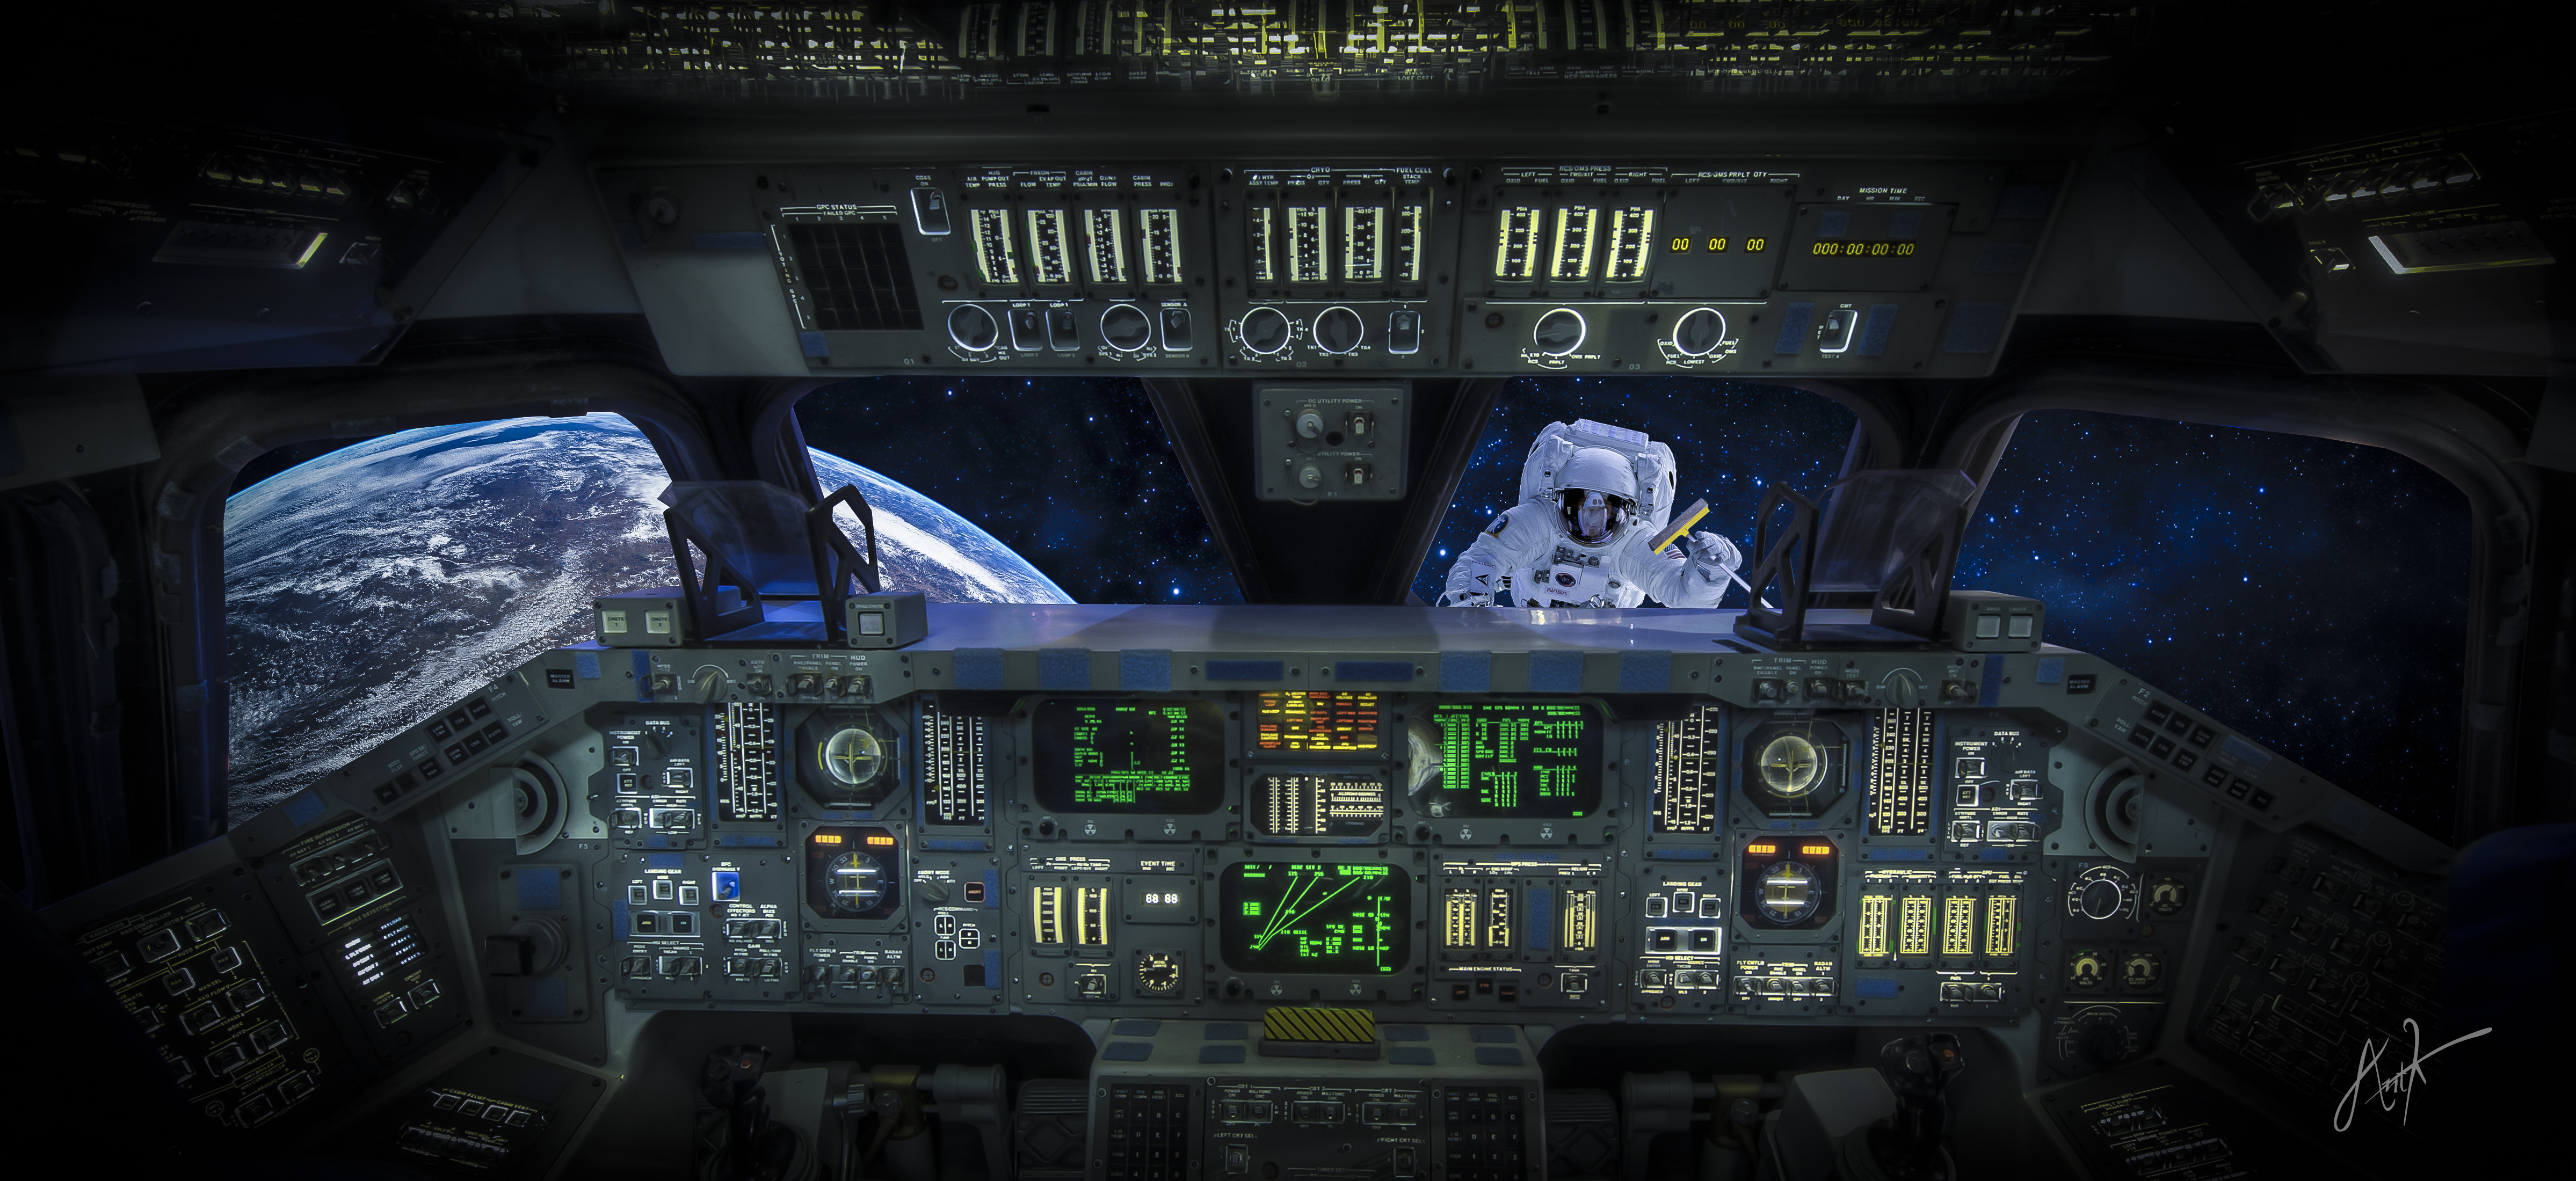 space shuttle launch cockpit view hd - photo #11